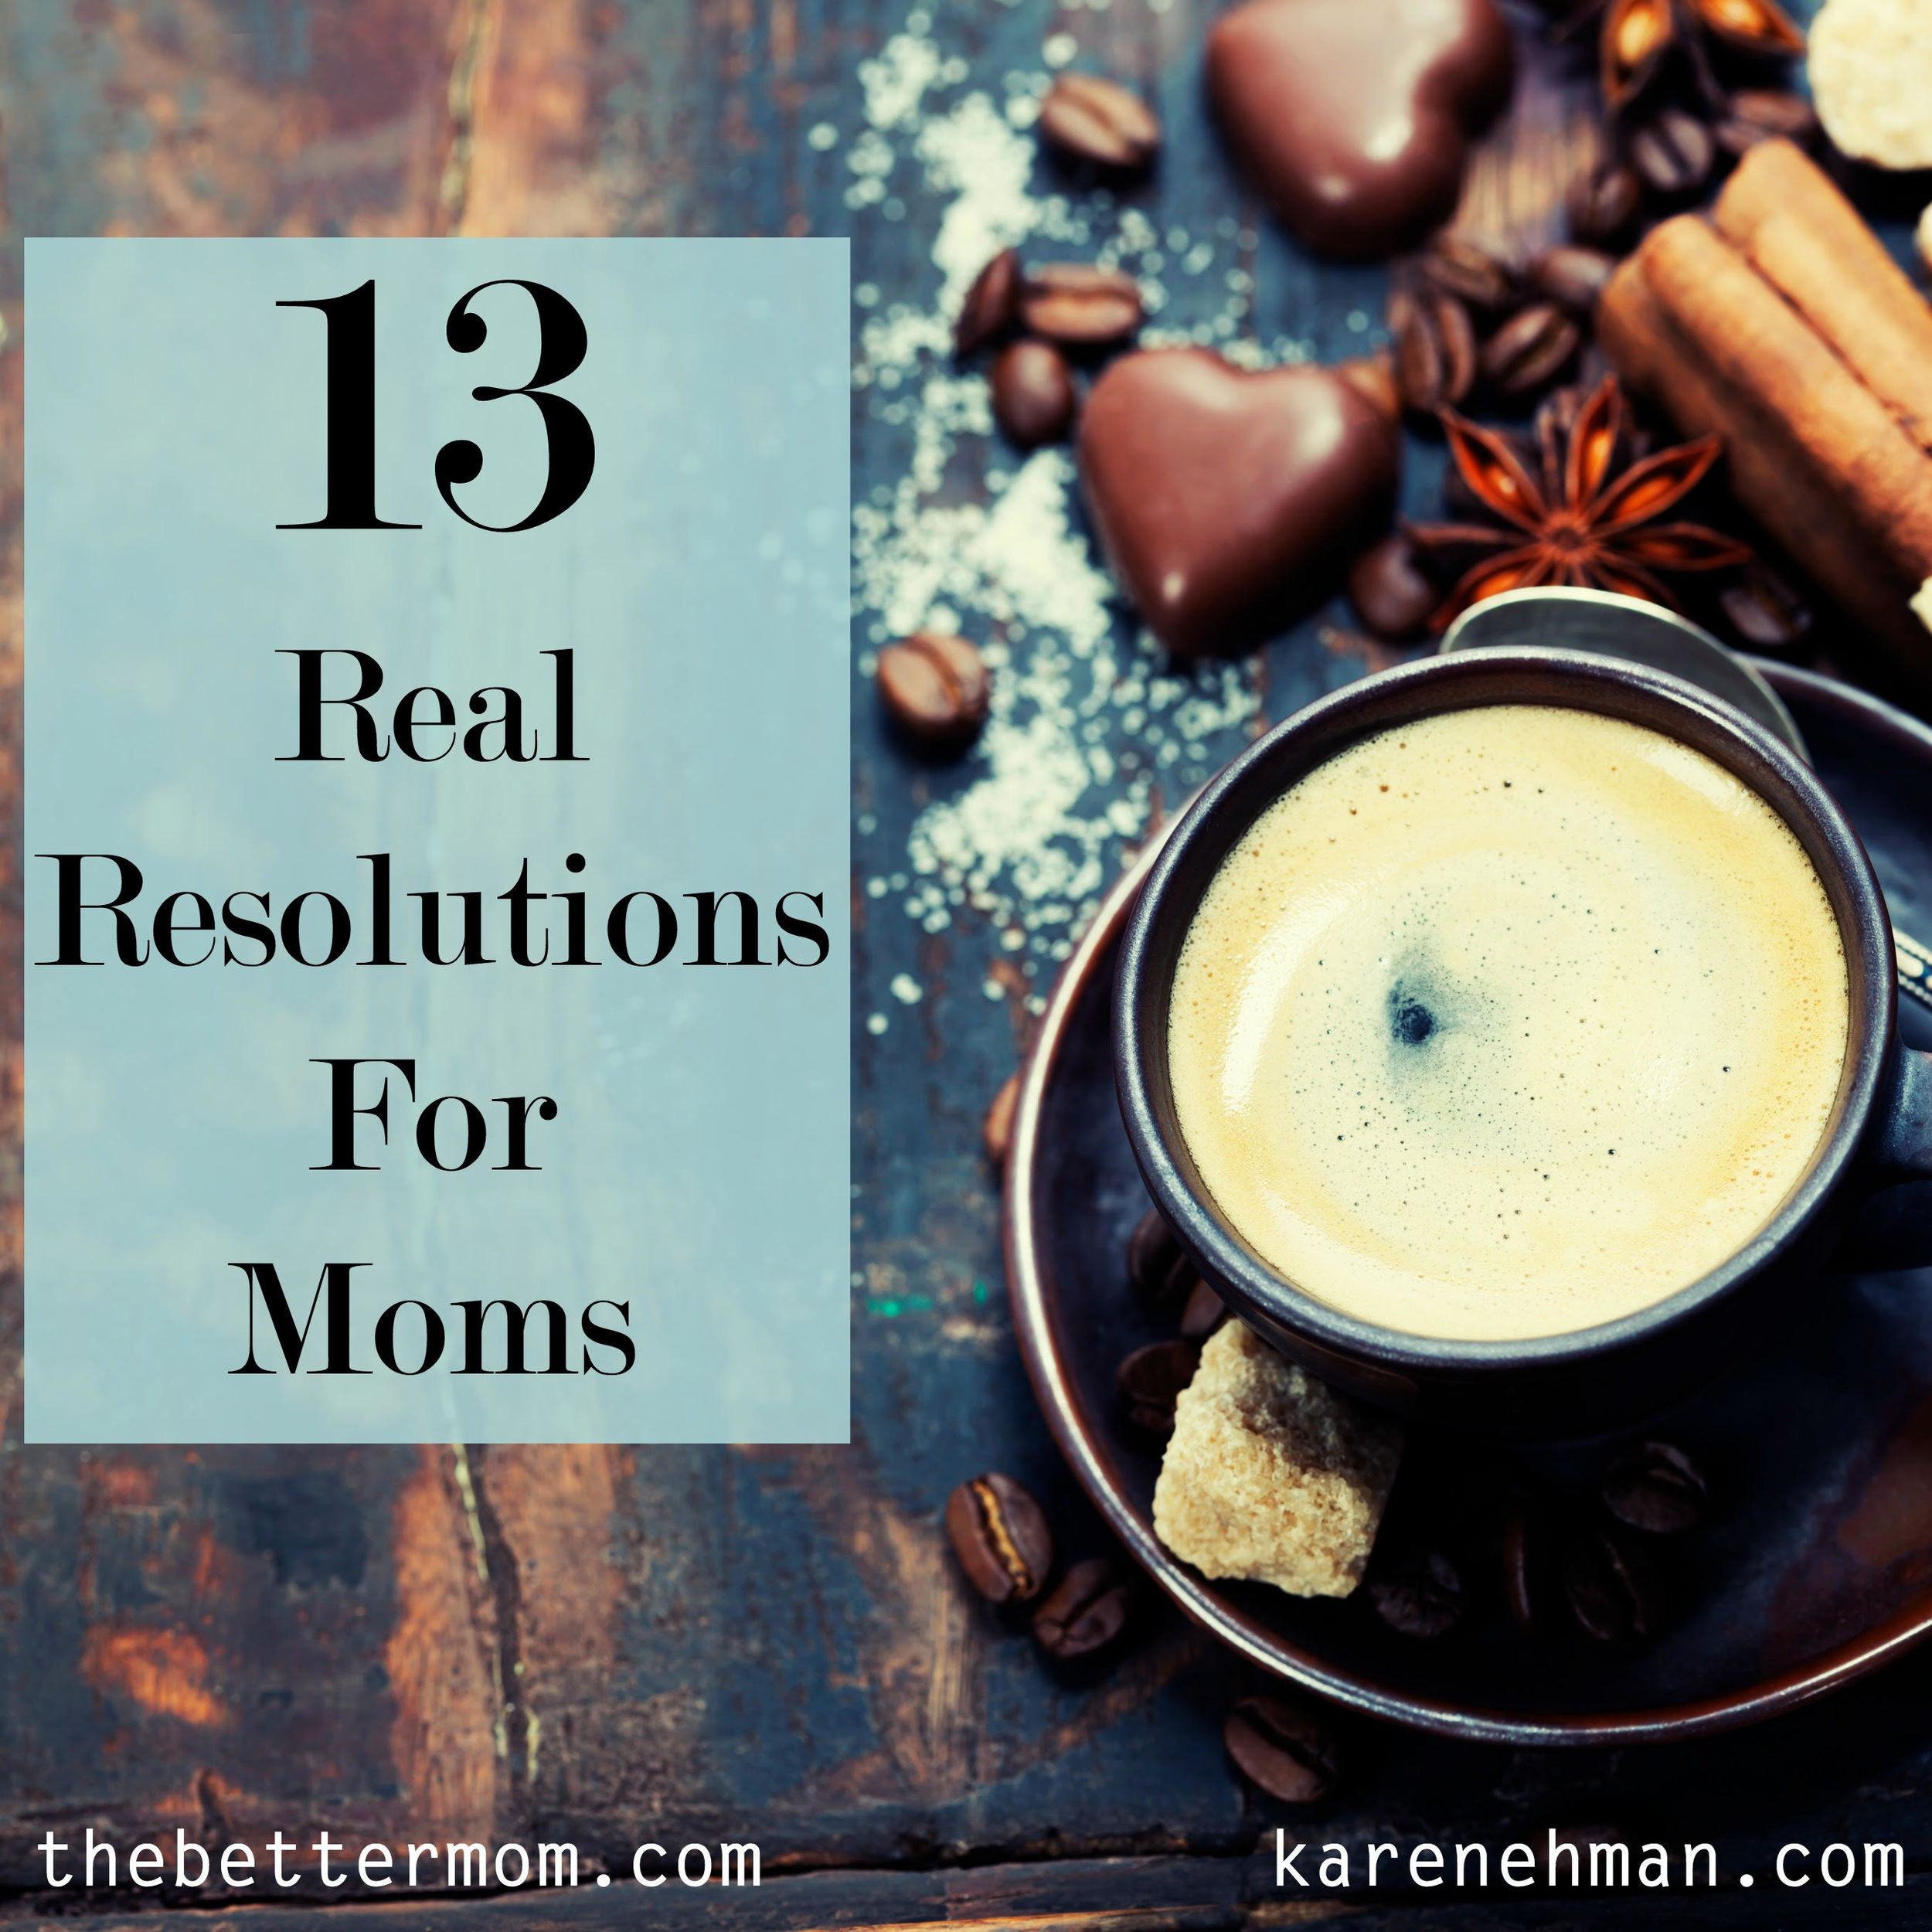 The holidays are upon us and over the next few days as families gather and rest, moms might just have a chance to reflect on the year behind us and resolve to change some things in the year ahead. Here are some ideas to tuck into your pocket and consider as resolutions for you, mom!